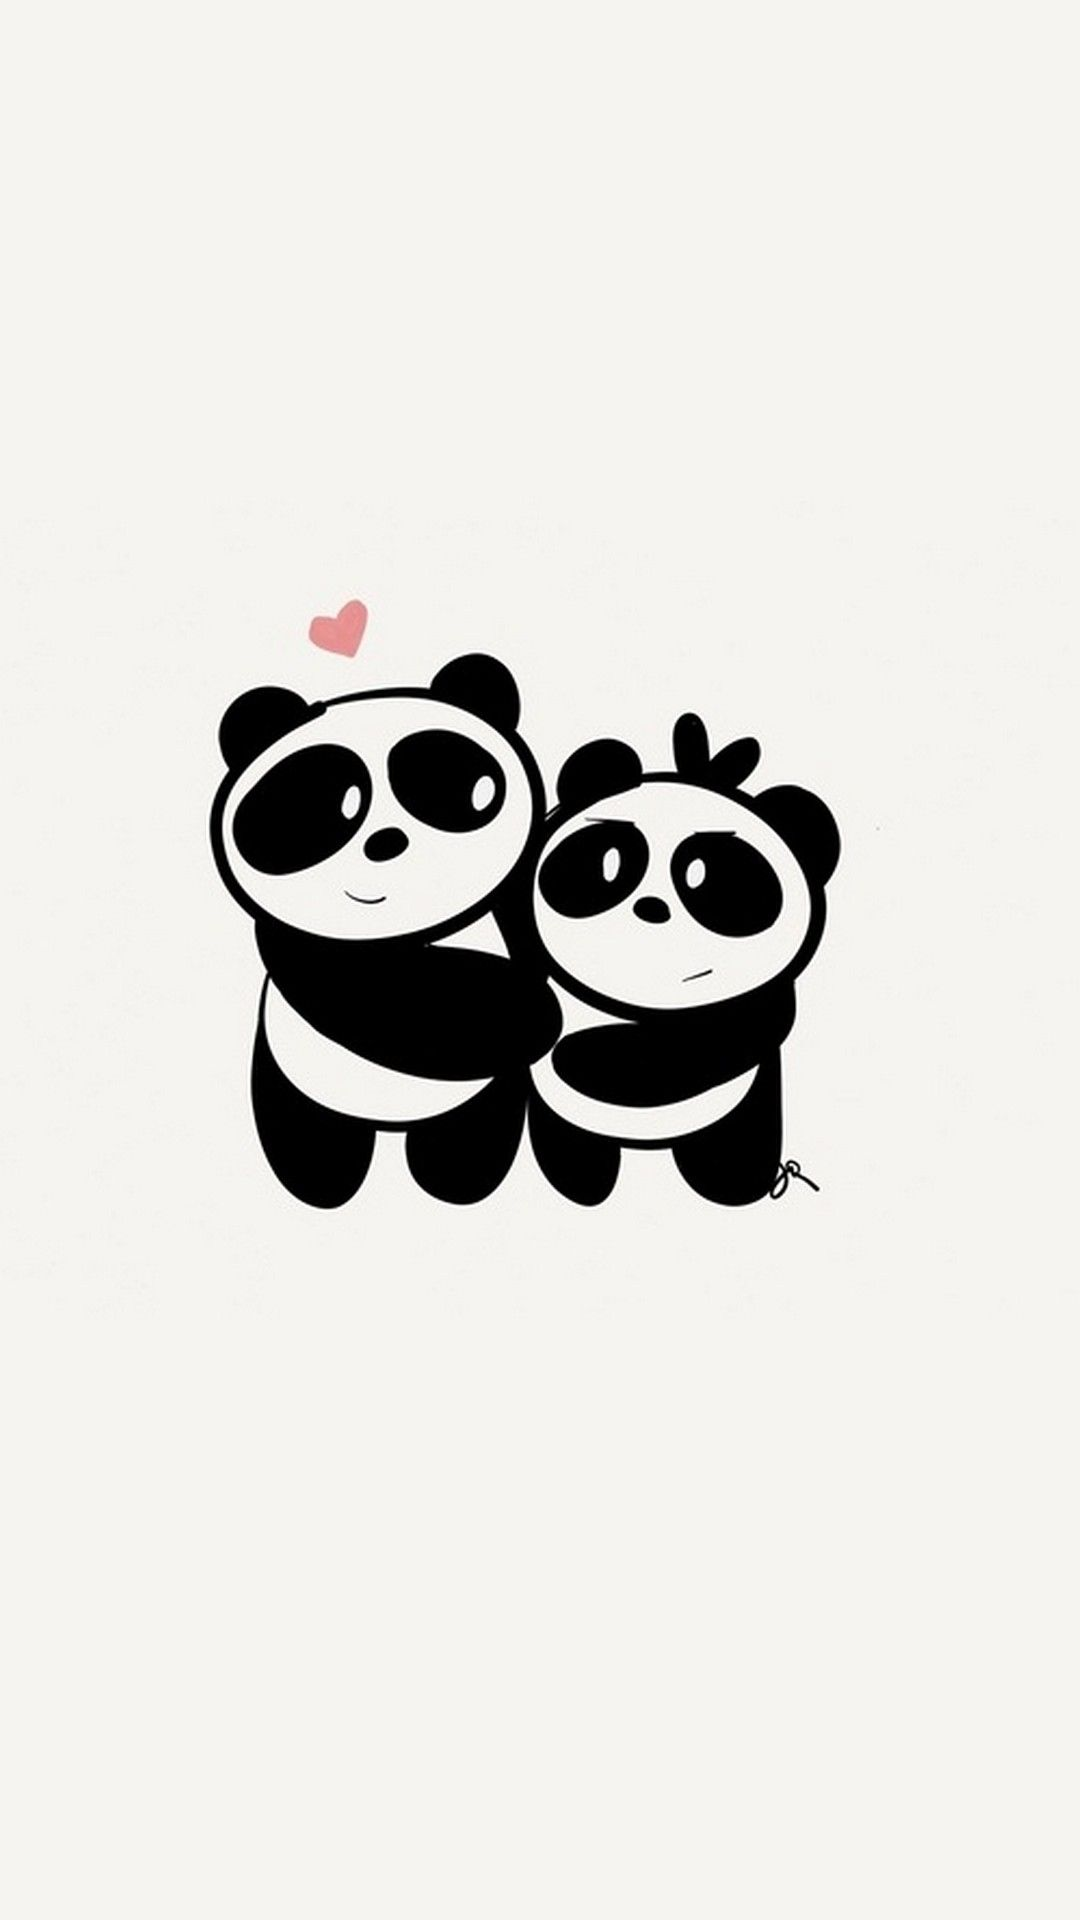 Iphone X Cute Couple Panda Wallpaper Gh Pinterest Pantalla